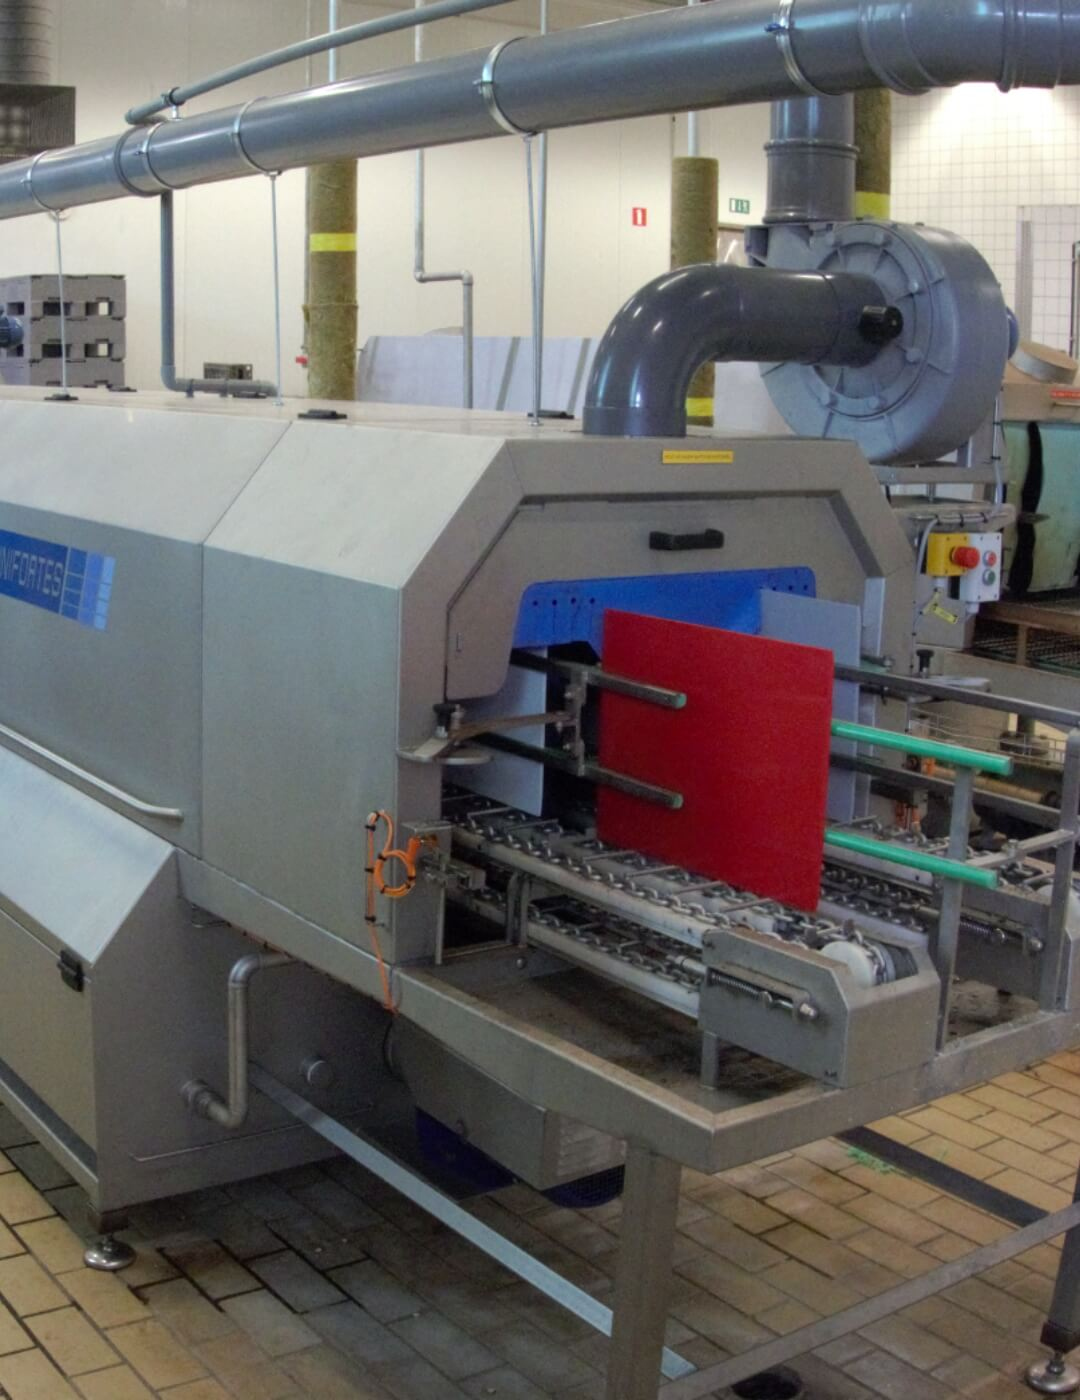 Plate washer for cleaning all types of plates